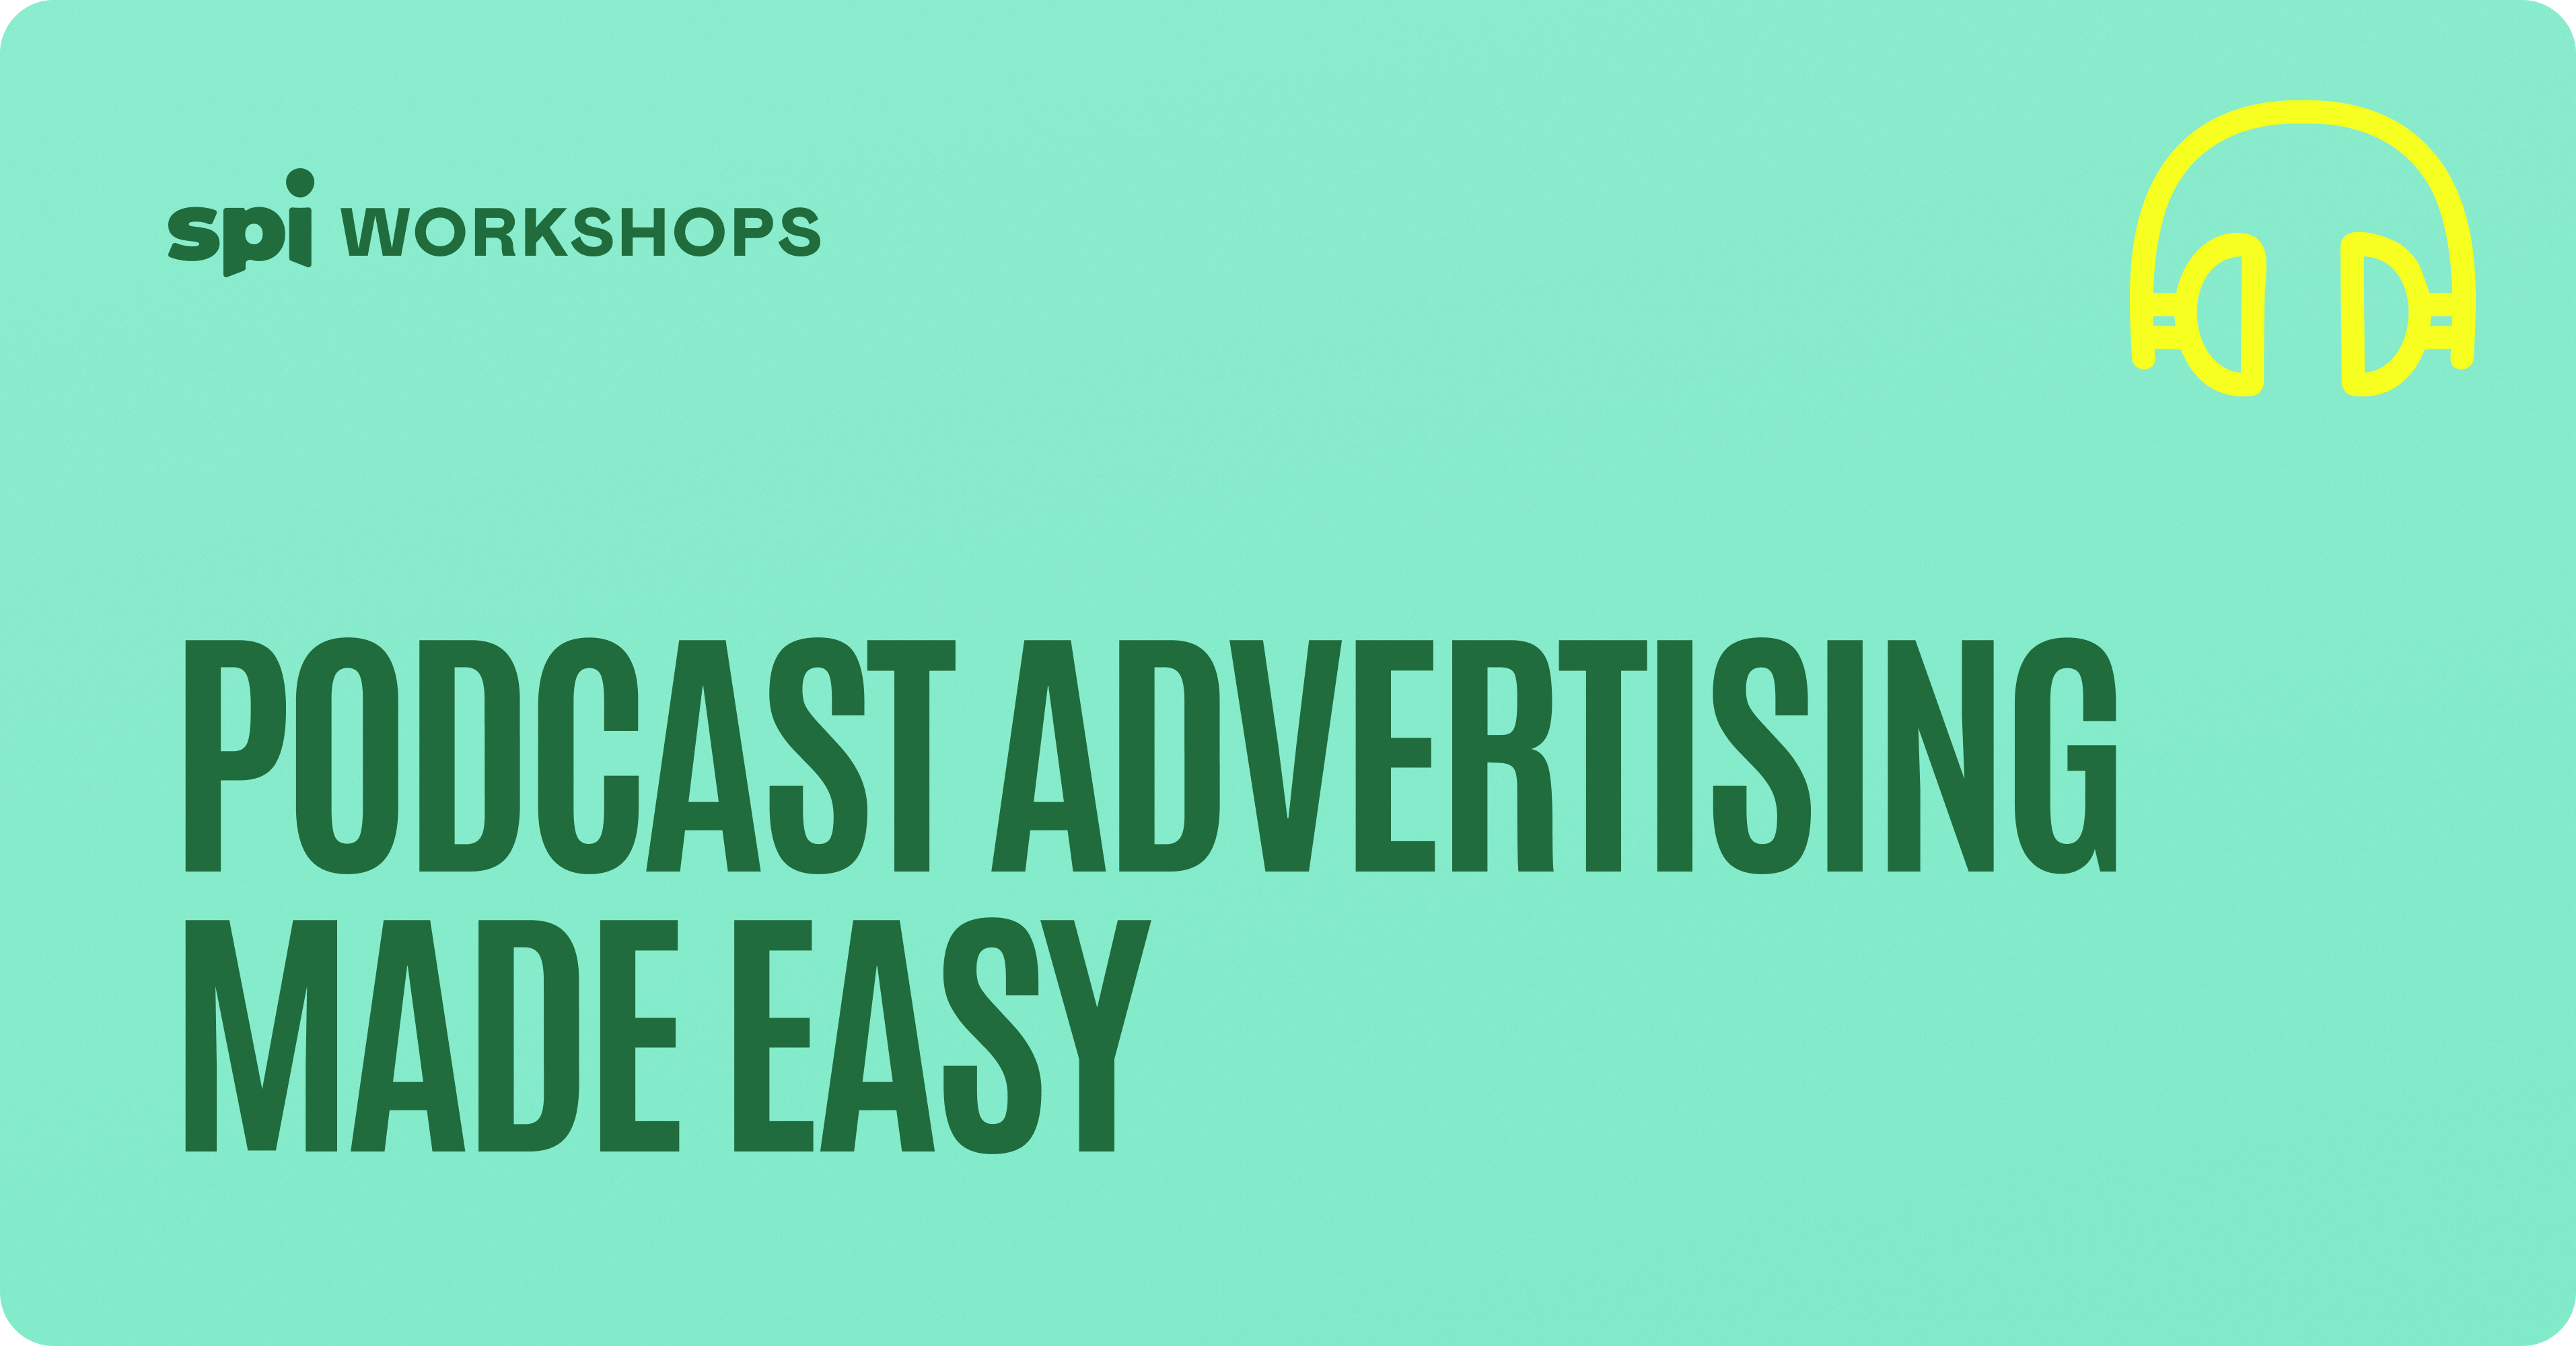 SPI Workshops: Podcast Advertising Made Easy